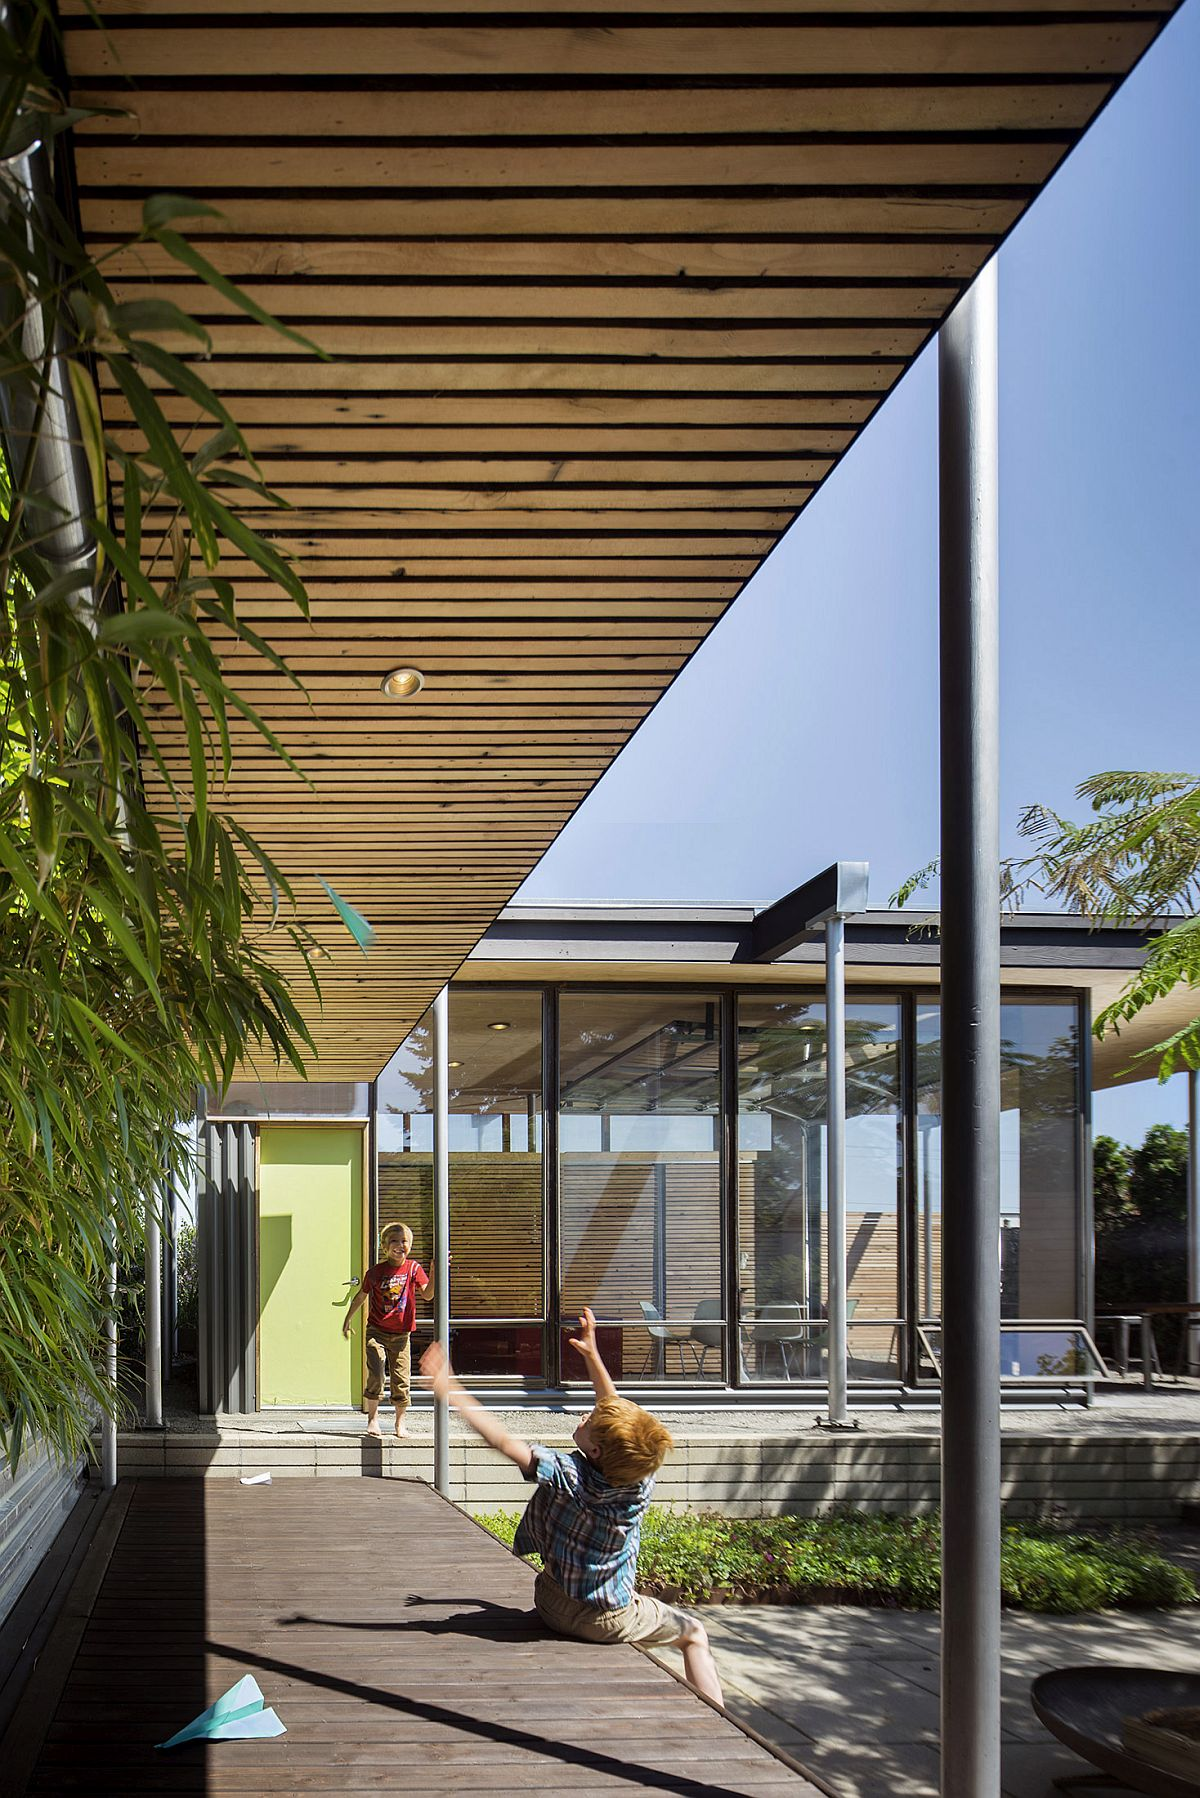 Extended pavilion roof offers shade for the walkways